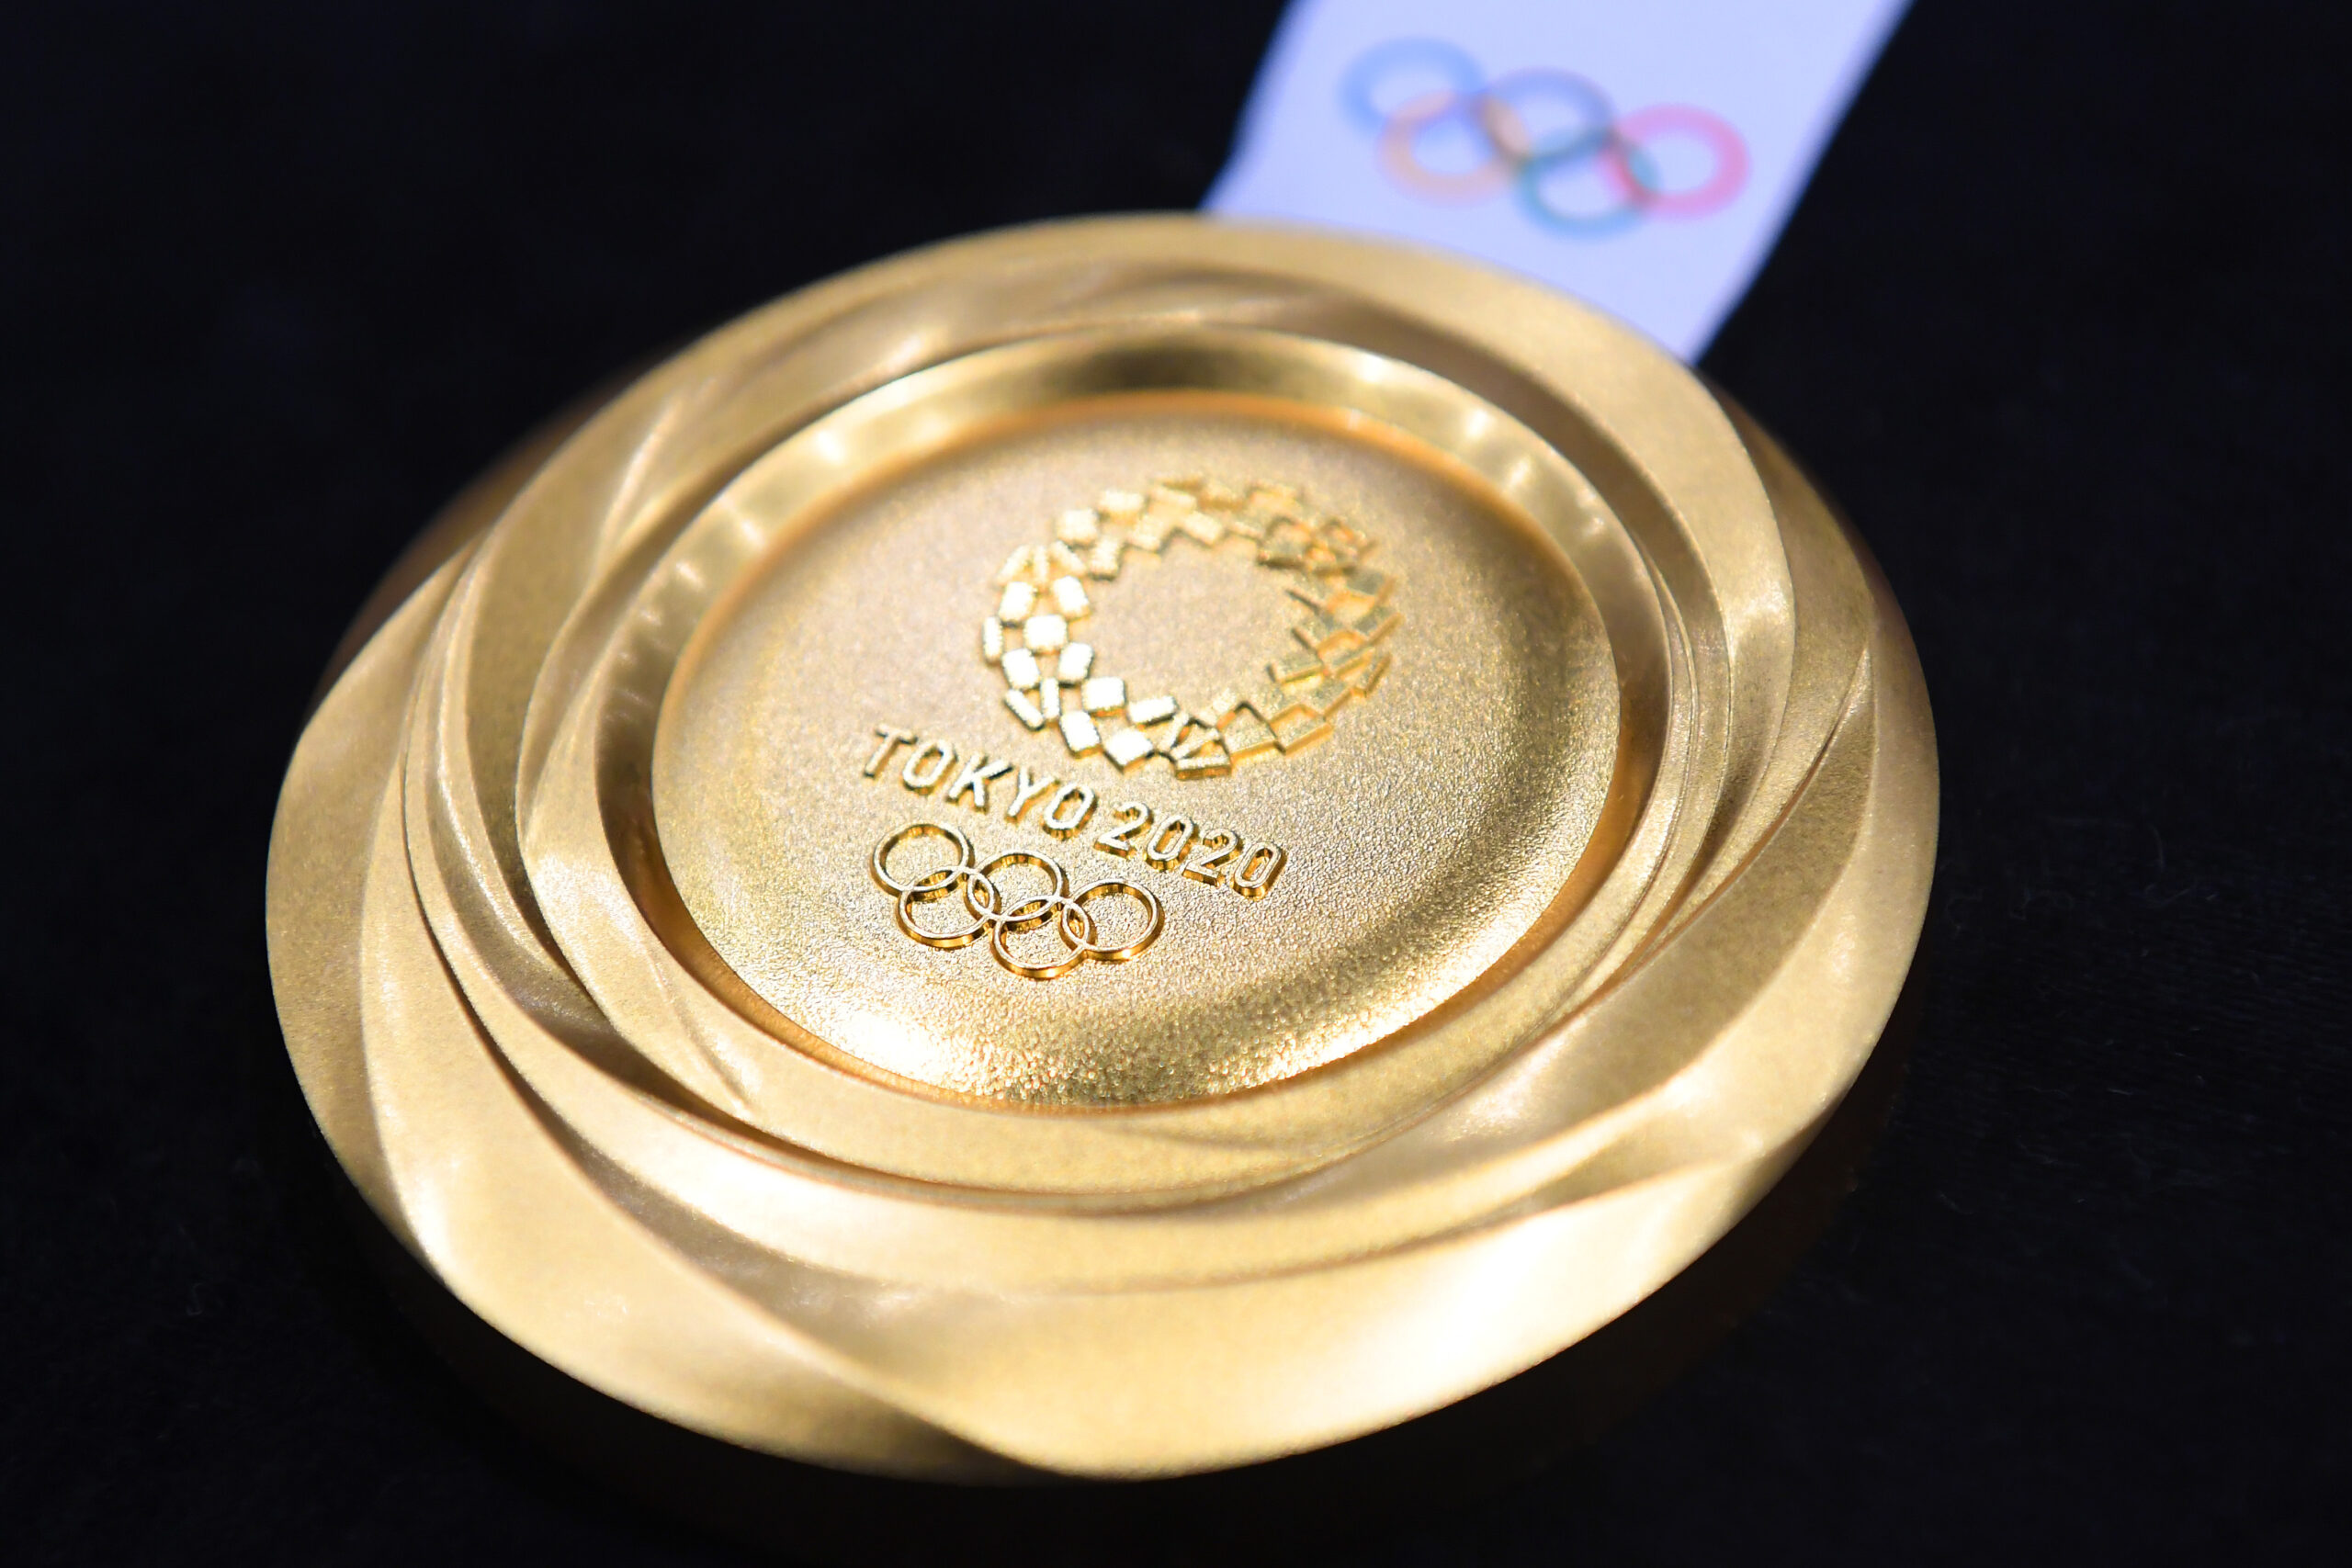 A gold medal is displayed at the Tokyo Olympics.  (Photo by Atsushi Tomura/Getty Images)